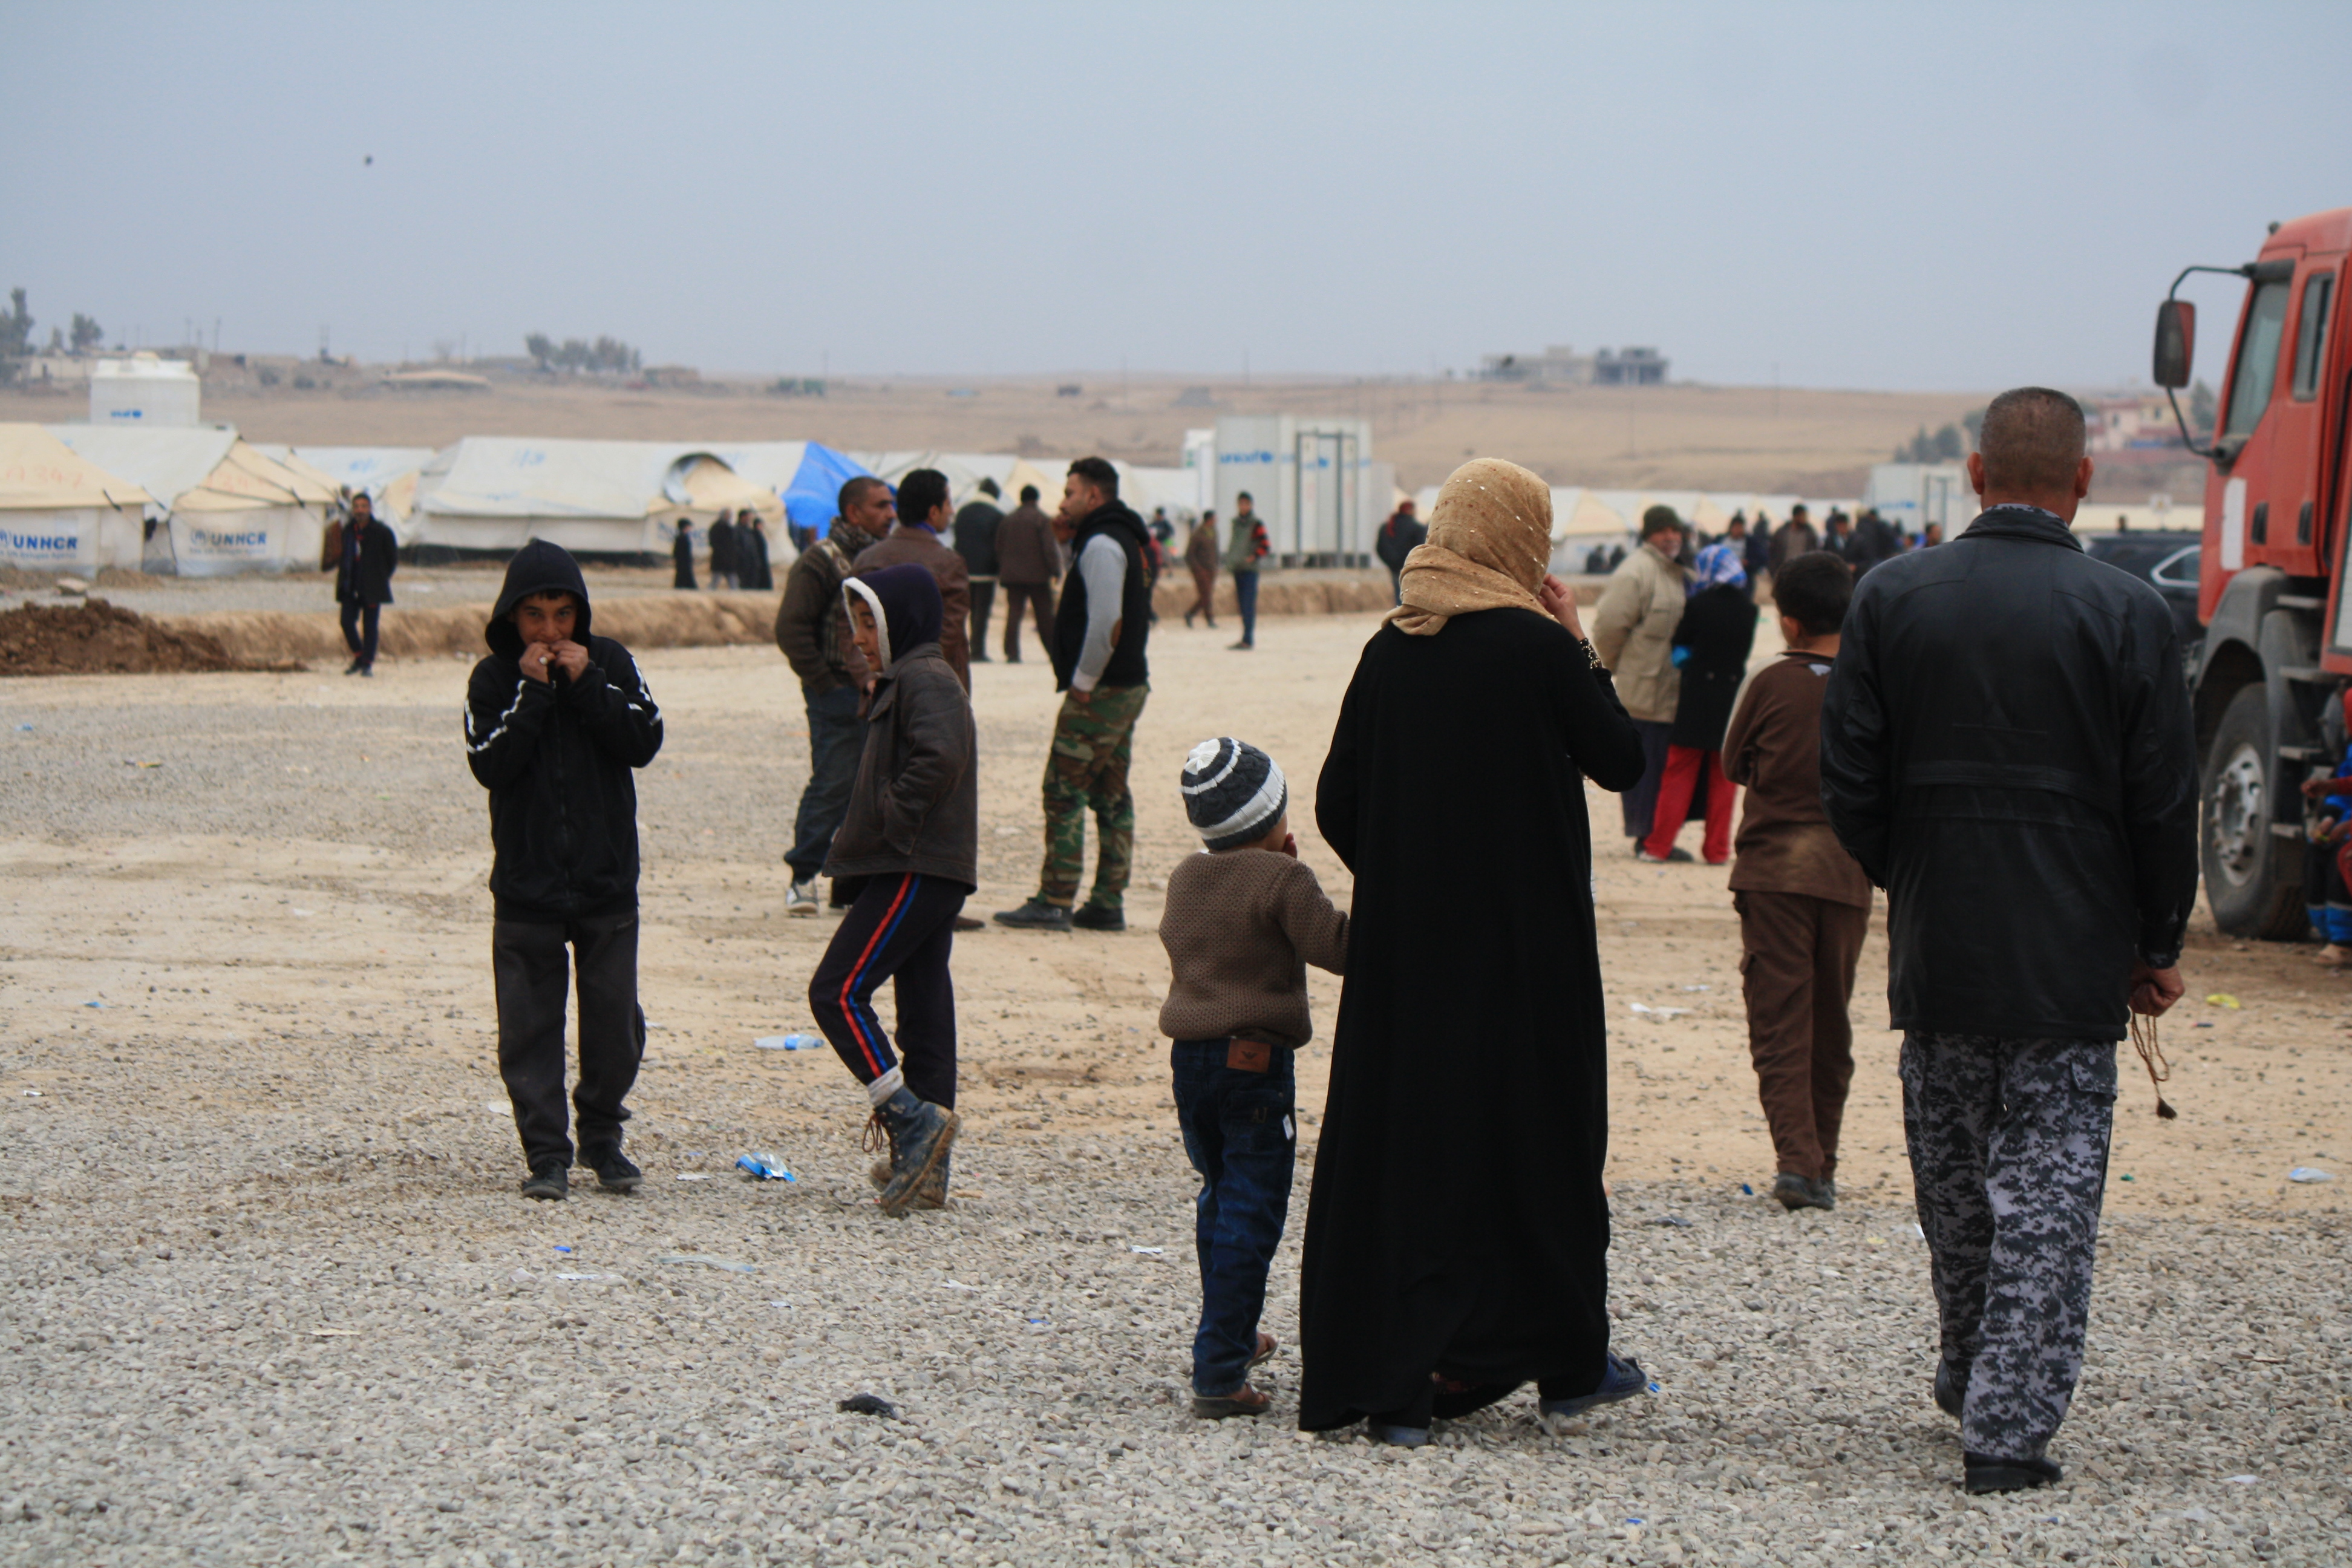 The International Organization for Migration says nearly 94,000 people have fled their homes since the Mosul offensive began in mid-October. At this desolate refugee camp, many people say a modicum of safety and freedom are worth leaving everything e...